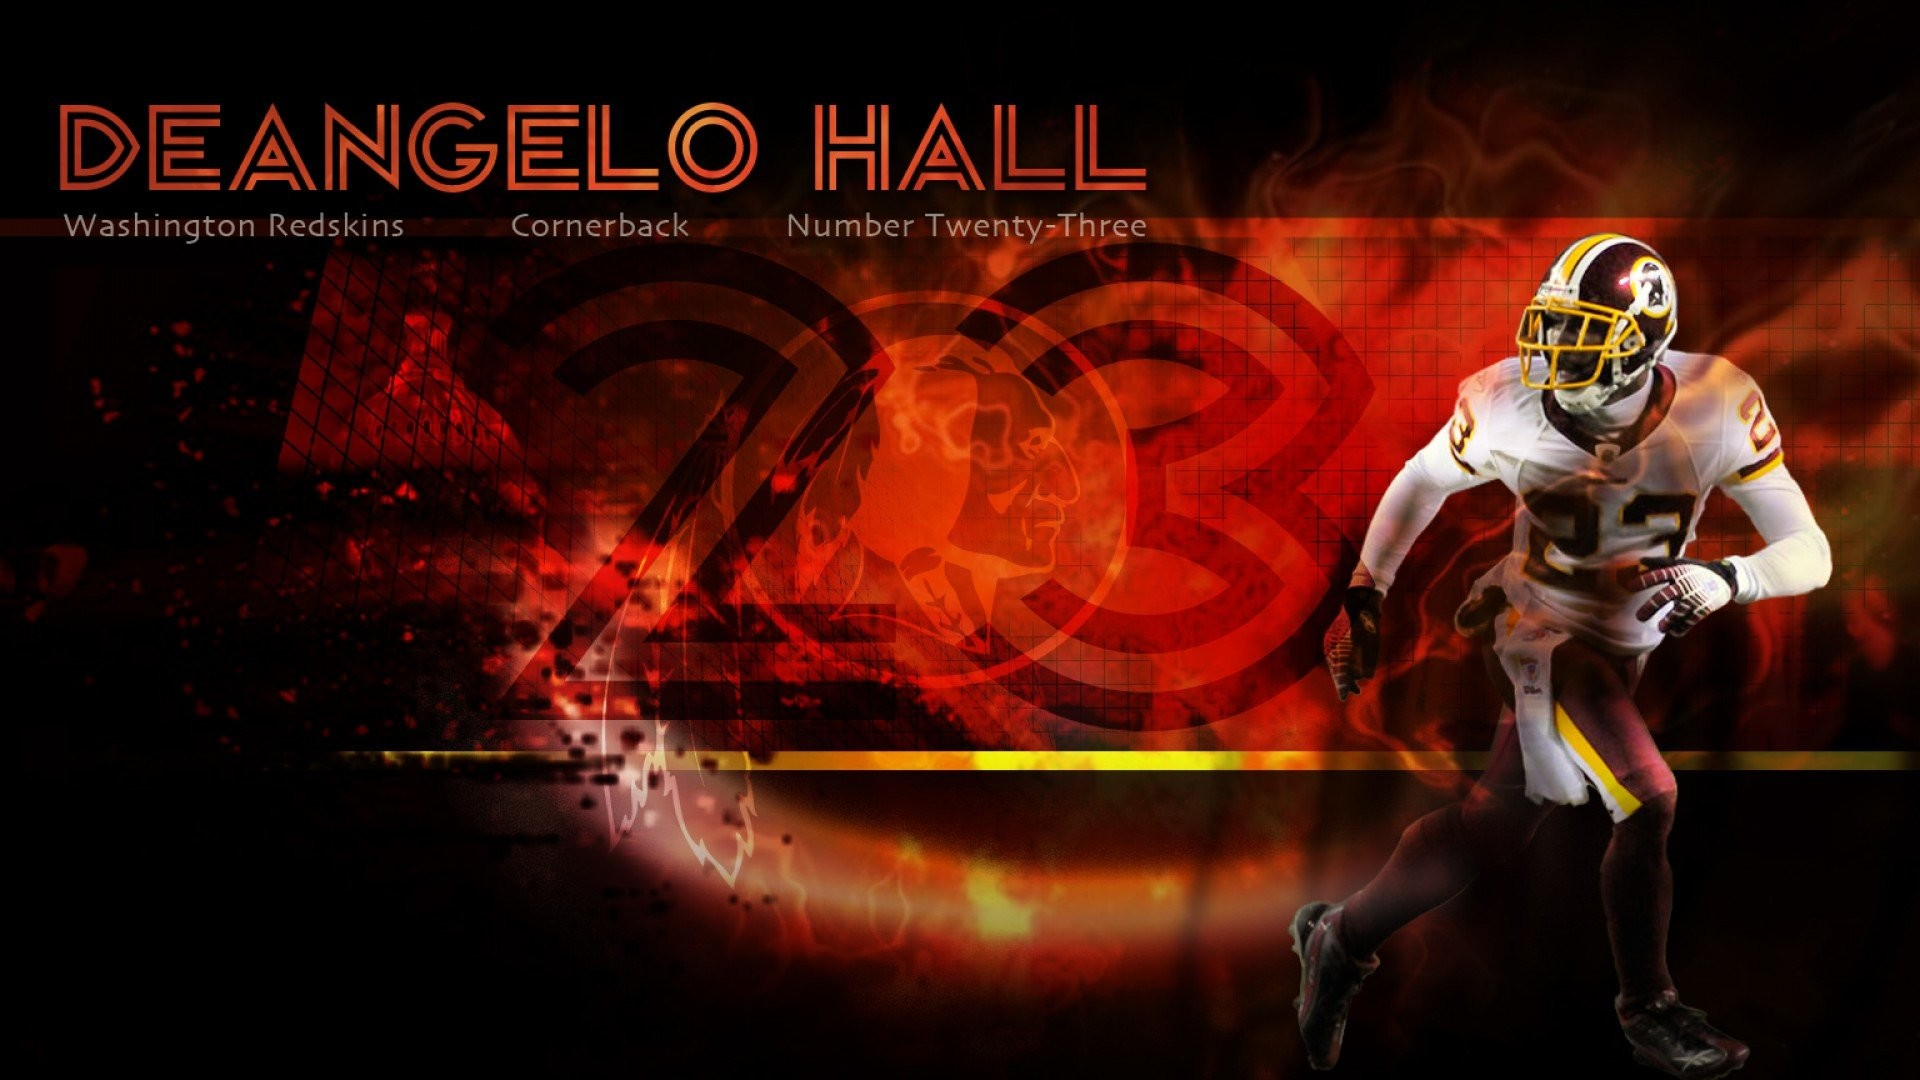 1920x1080 Deangelo Hall Redskins Wallpaper » WallDevil - Best free HD .